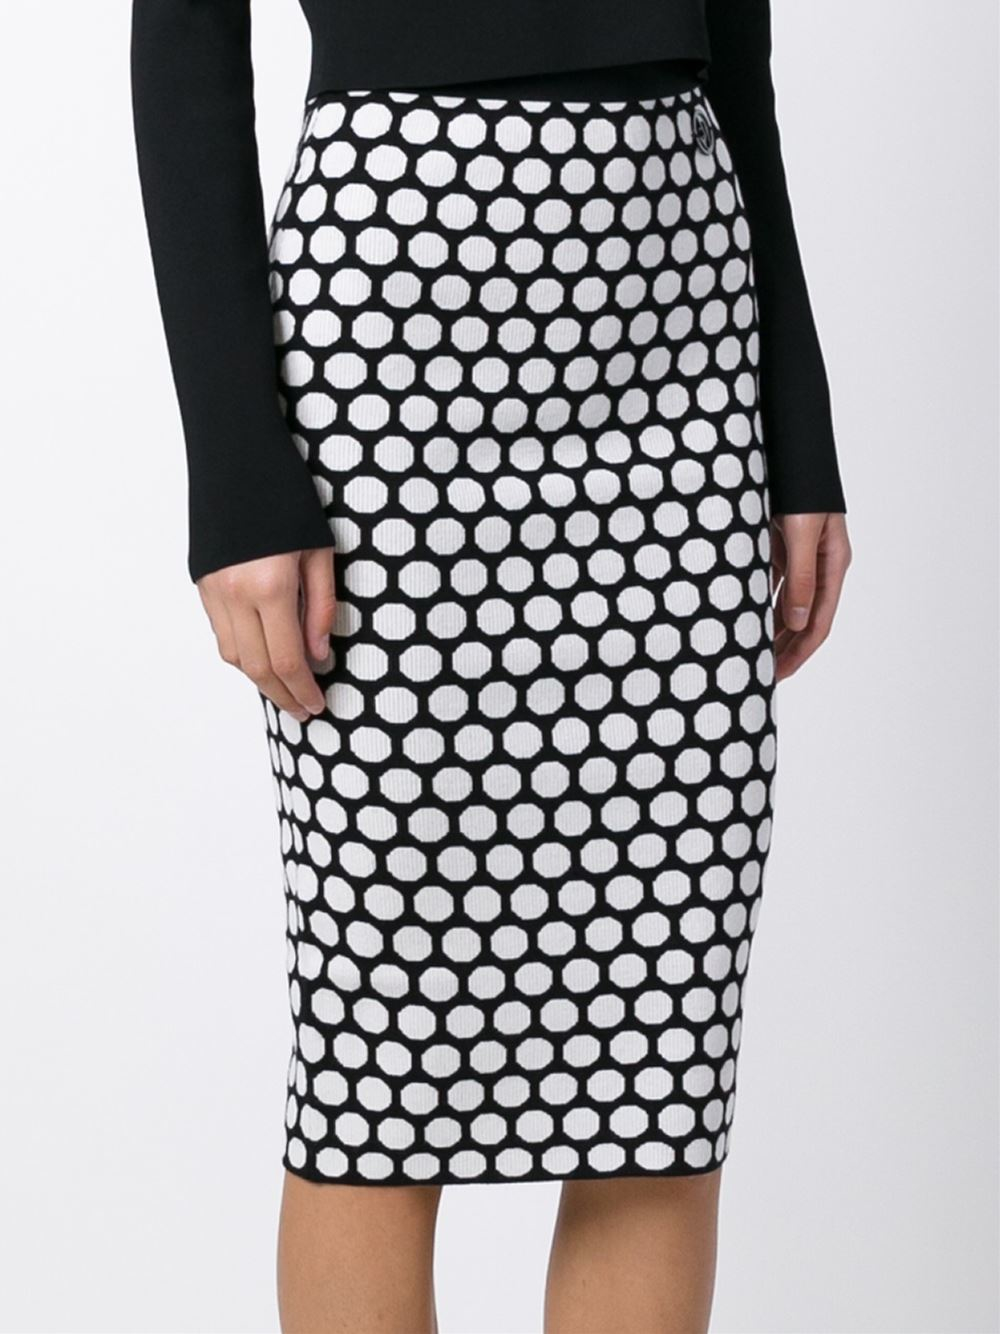 About the polka dot pencil skirt. The skirt is a super cheap skirt from Zara, it was only €9,99! It's a rather thick fabric which is actually fine because the skirt remains in good shape. Often with cheap skirts they don't look good anymore when you have worn them a few times. A simple black sweater on it .